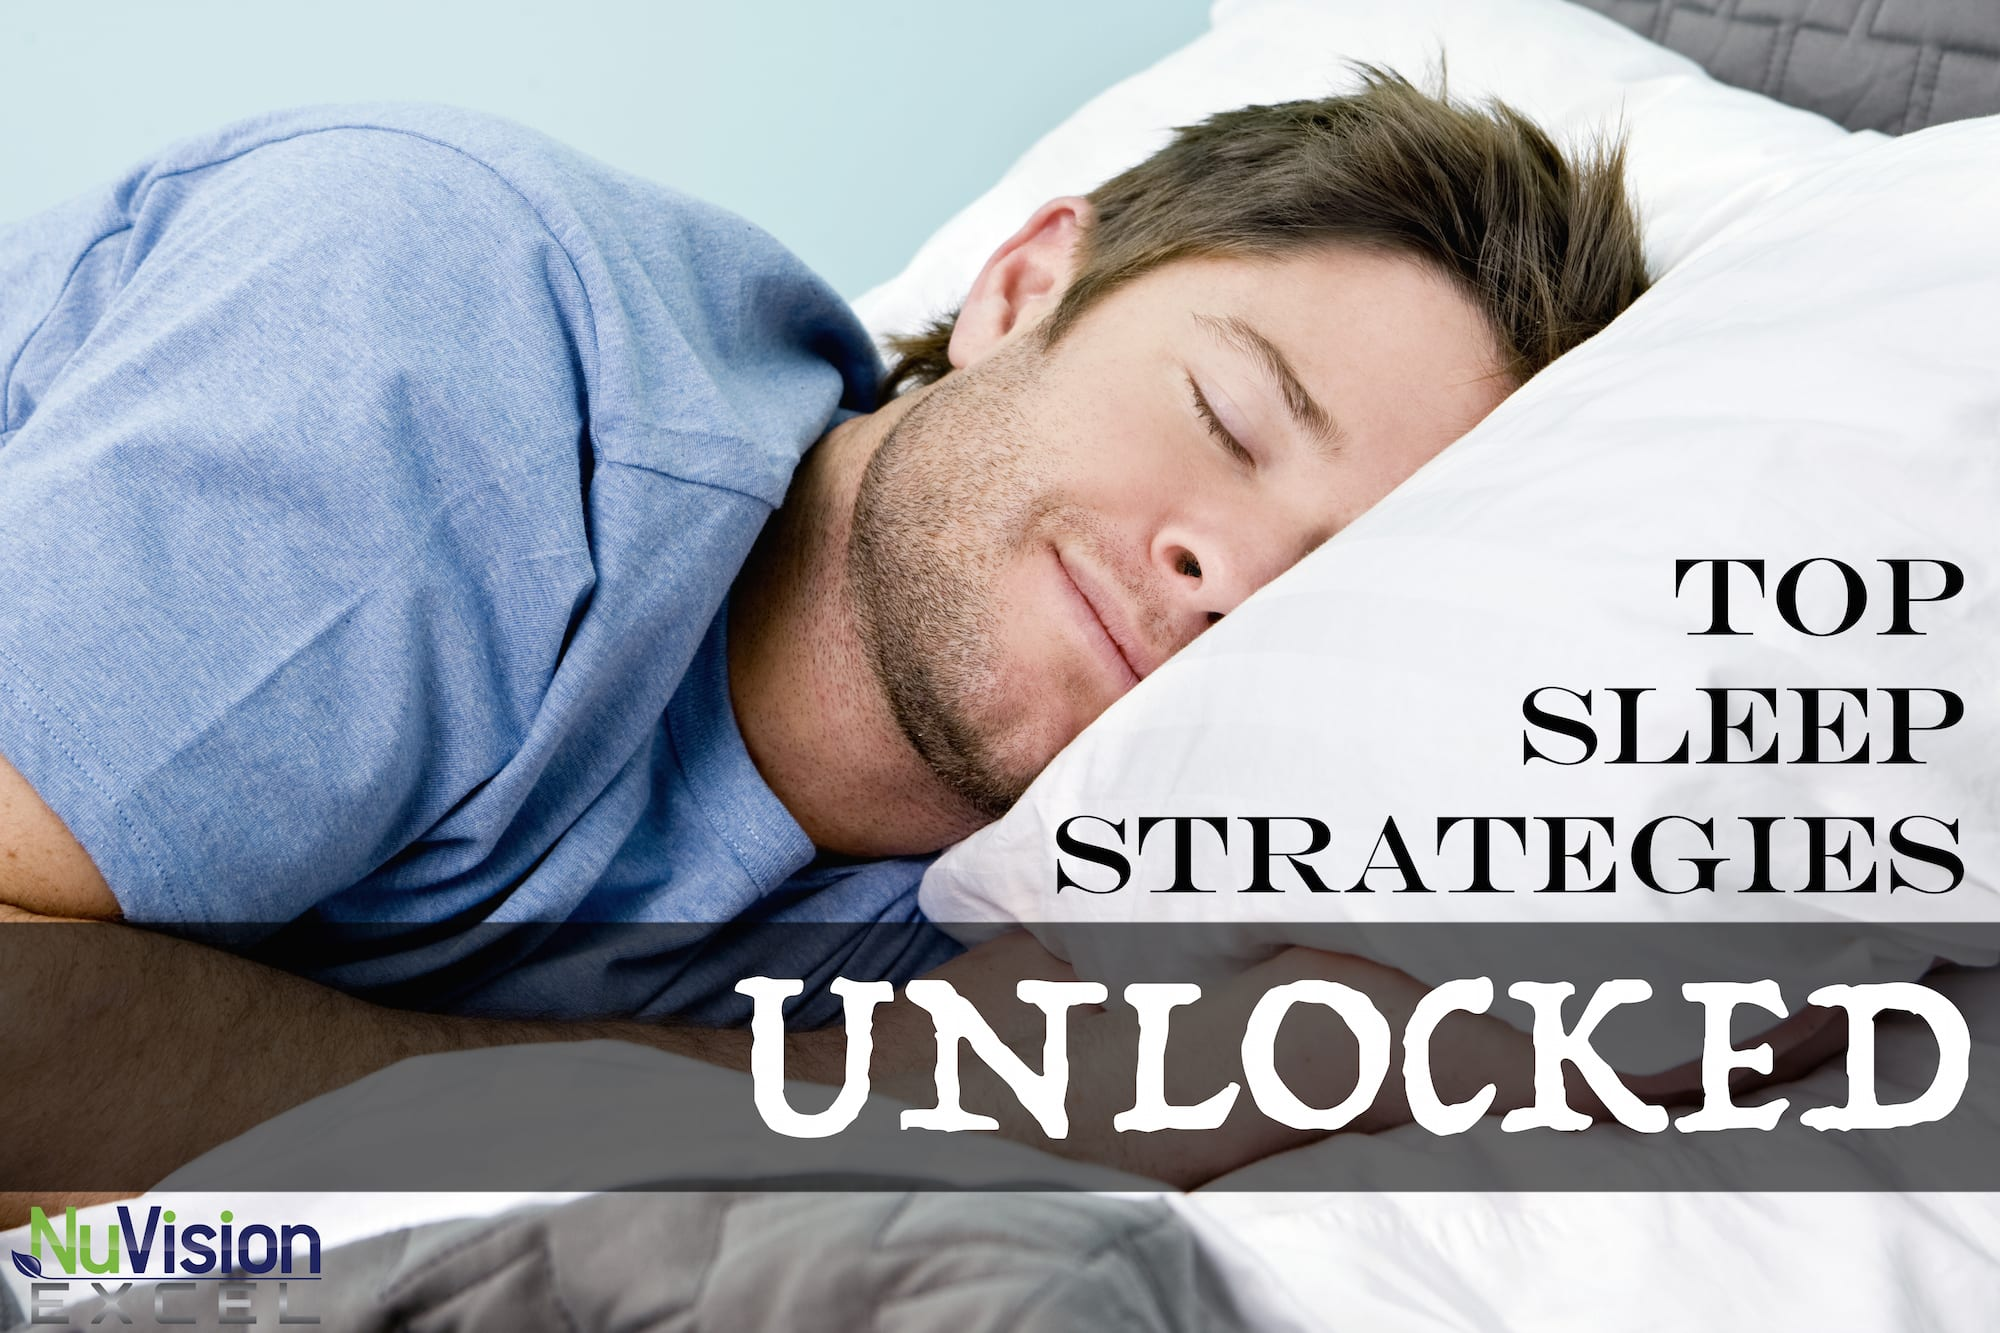 Top Sleep Strategies Unlocked